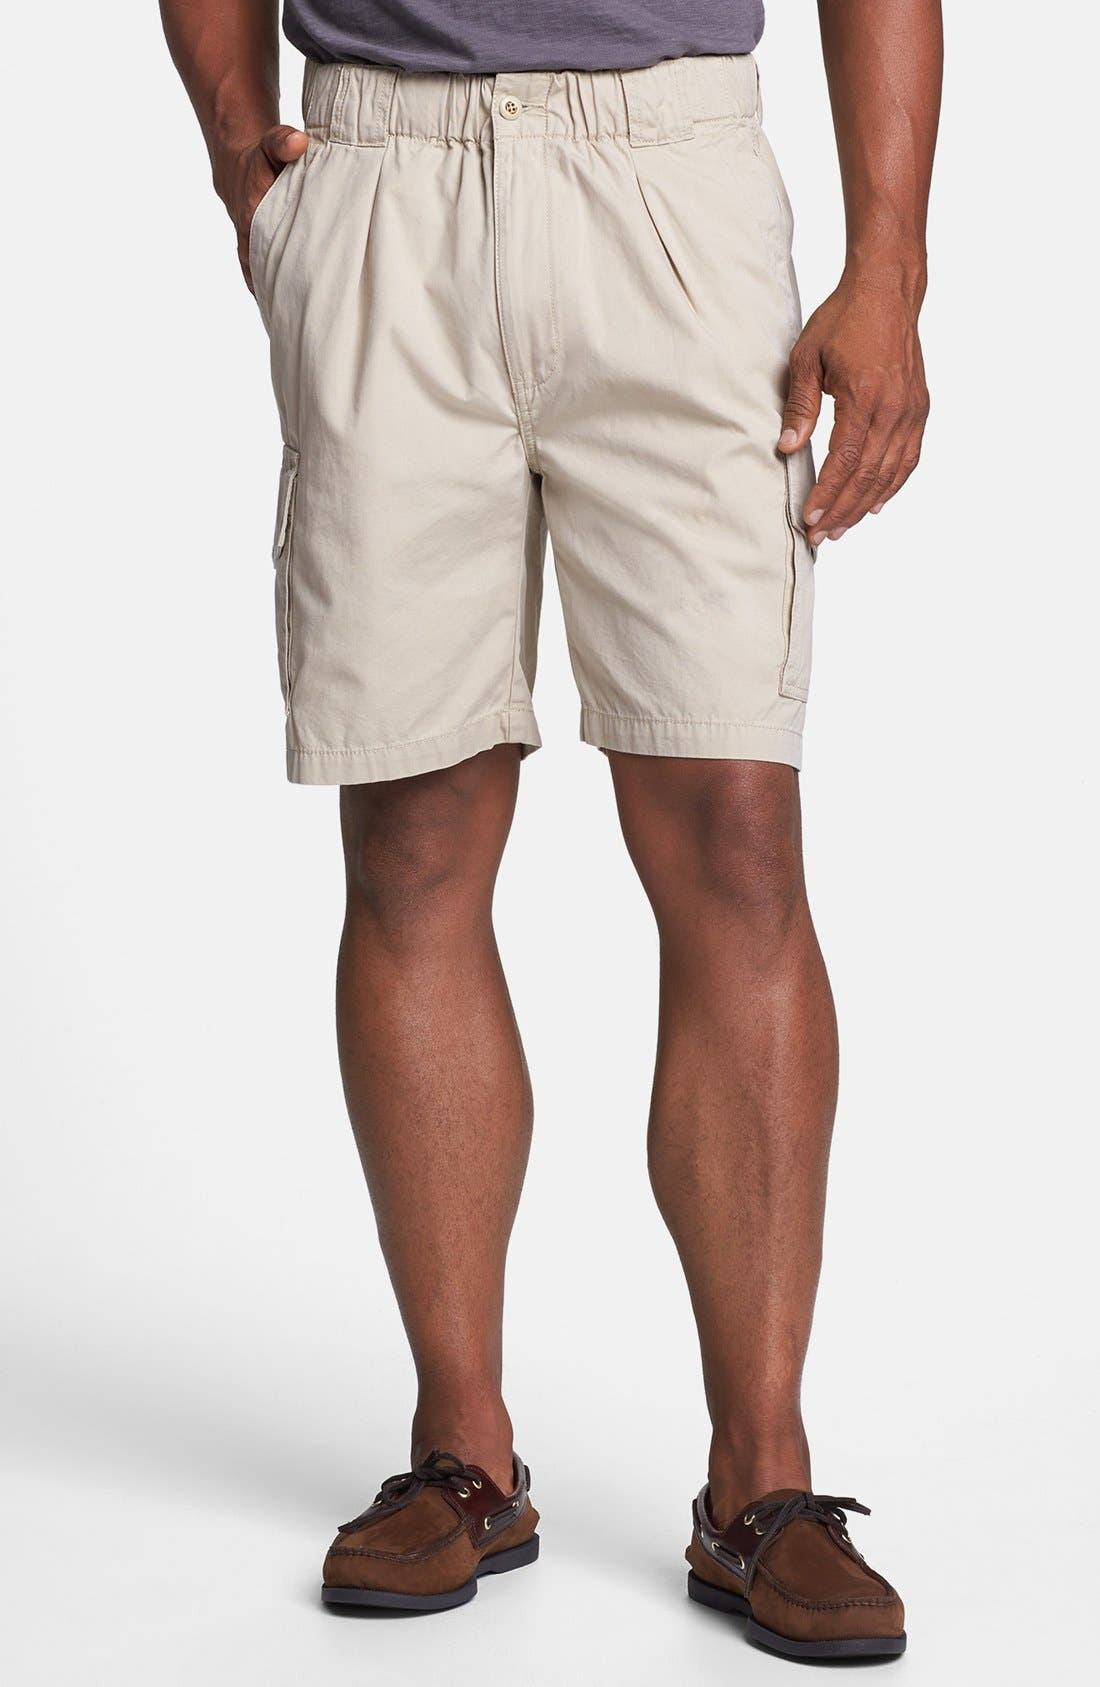 TOMMY BAHAMA,                             Relax 'Survivor' Cargo Shorts,                             Main thumbnail 1, color,                             SXL